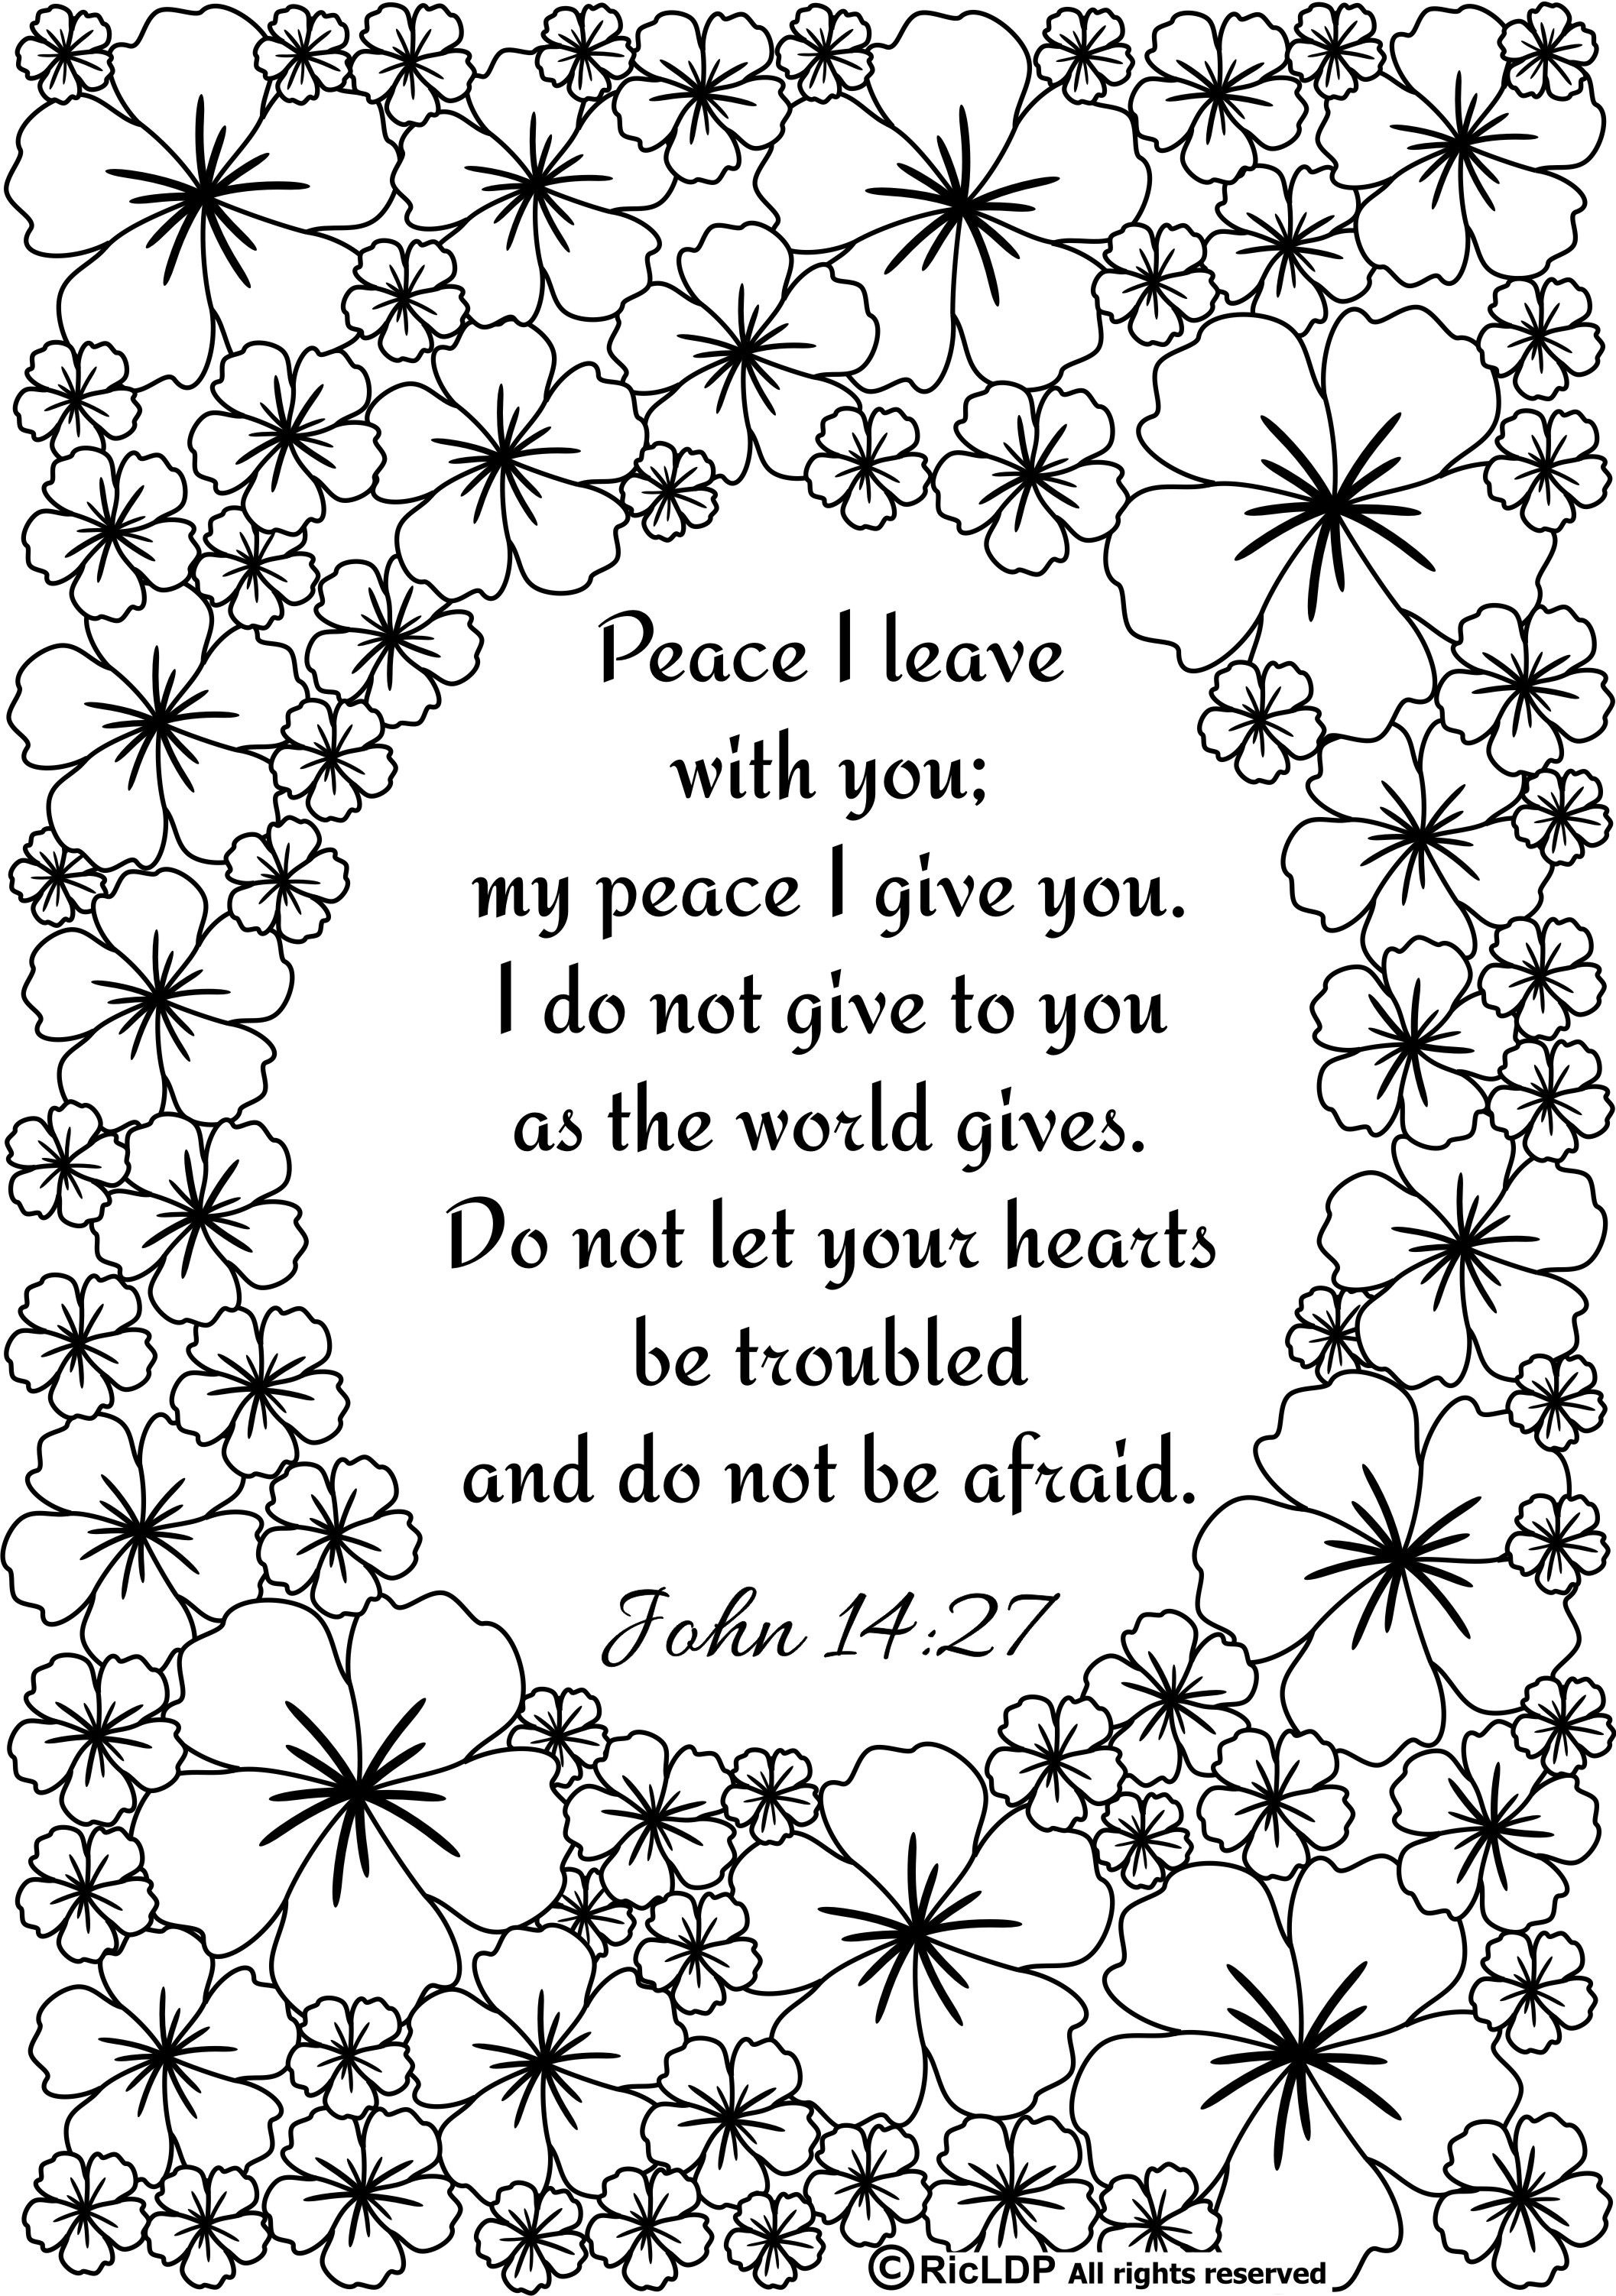 Ricldp Artworks (Ricldp) | Coloring Pages!!! | Bible Verse Coloring - Free Printable Bible Coloring Pages